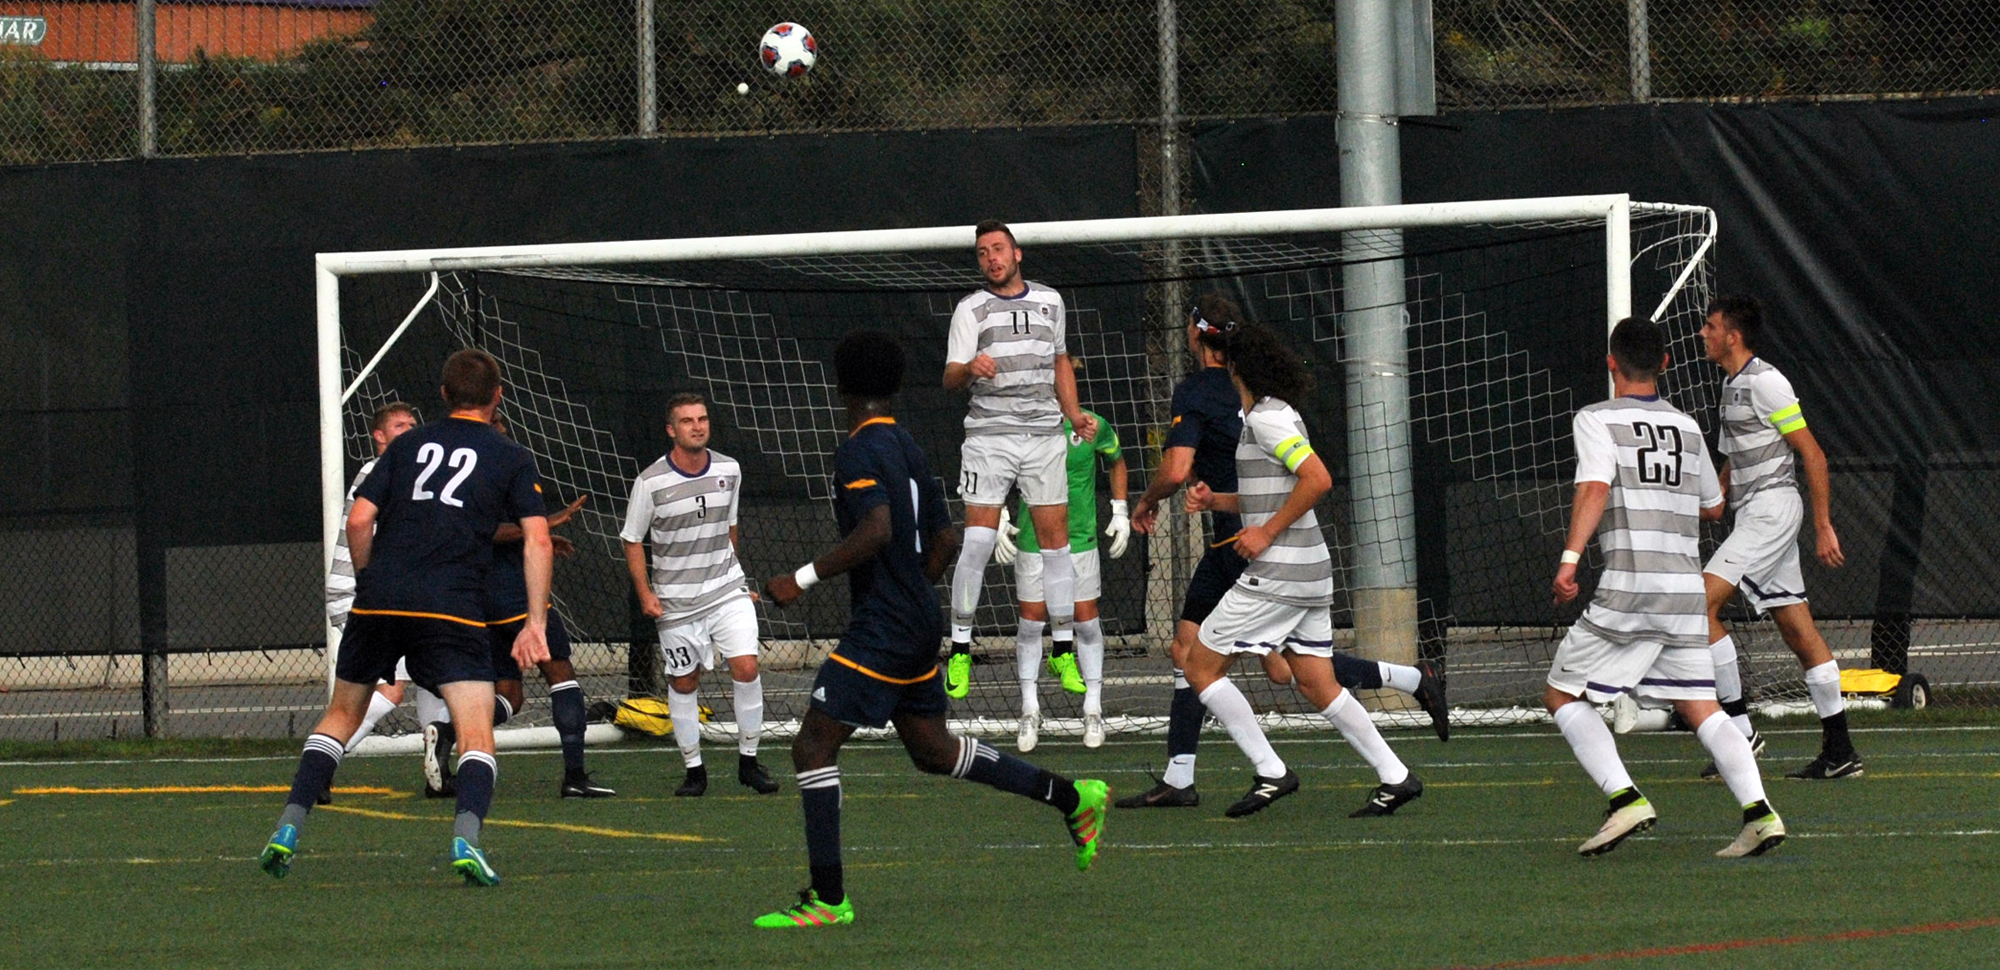 The men's soccer team will host its alumni game on Saturday, April 21.